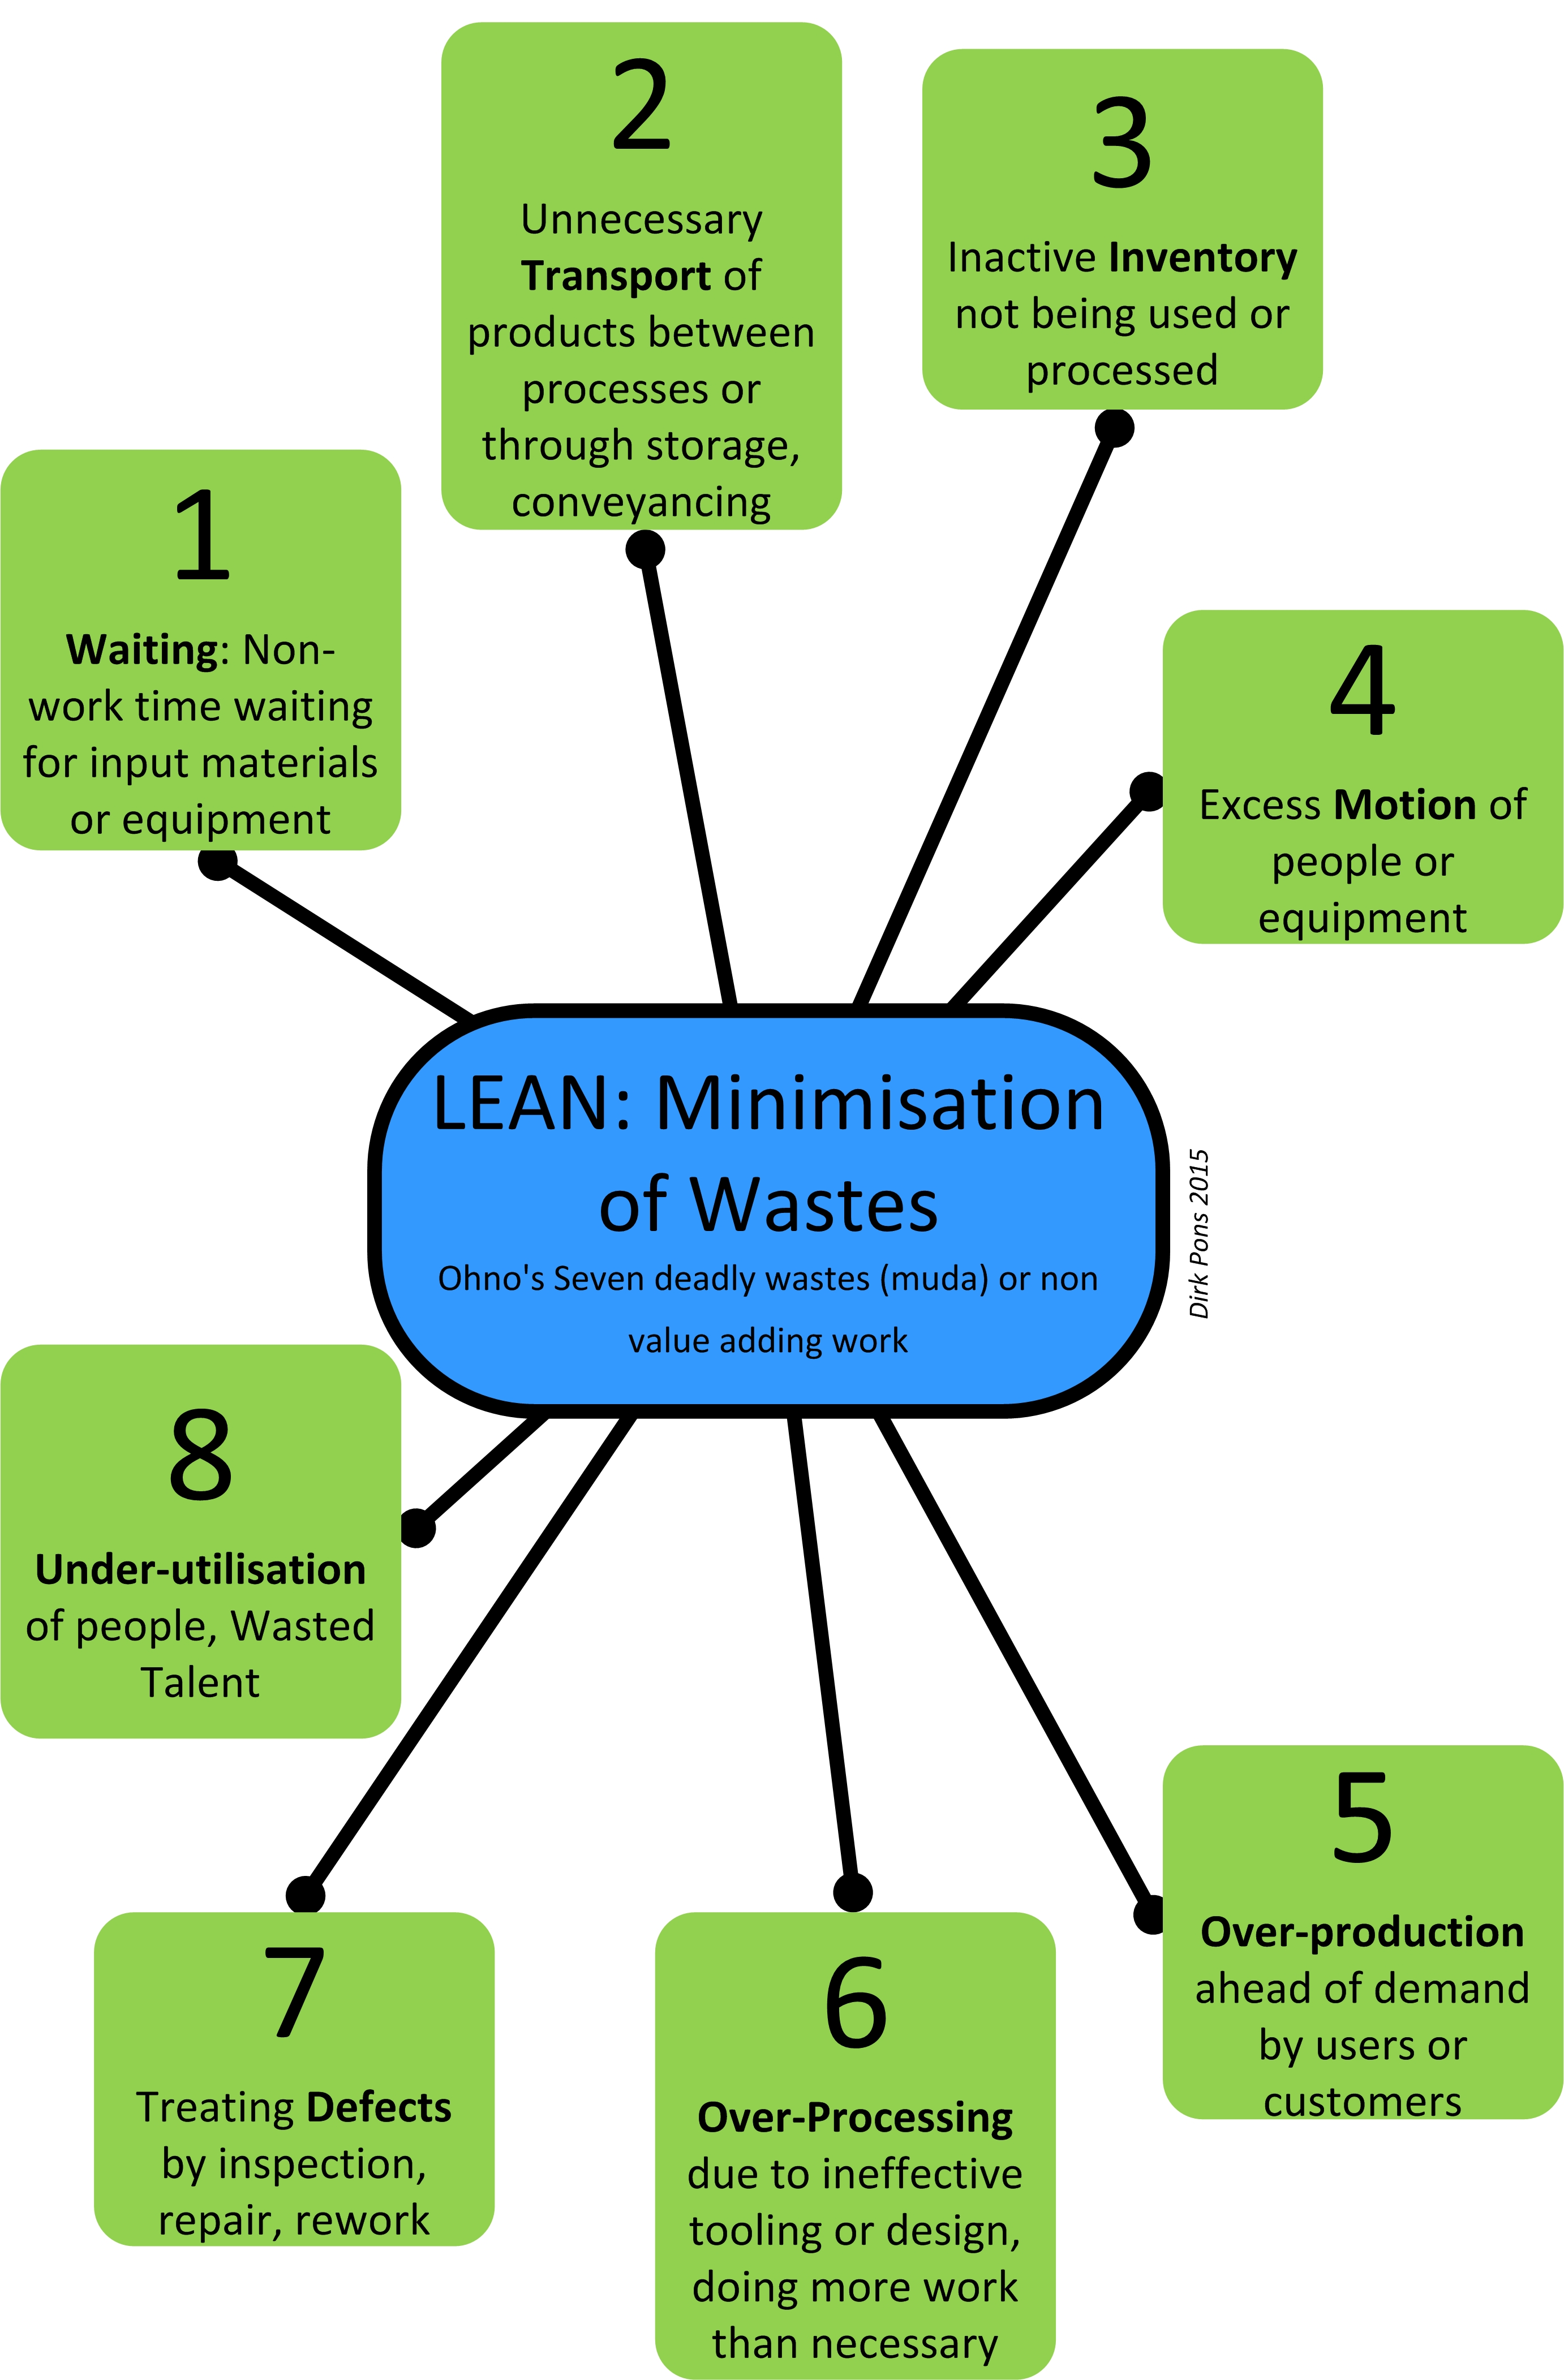 Showing 8 wasters of Lean Six Sigma